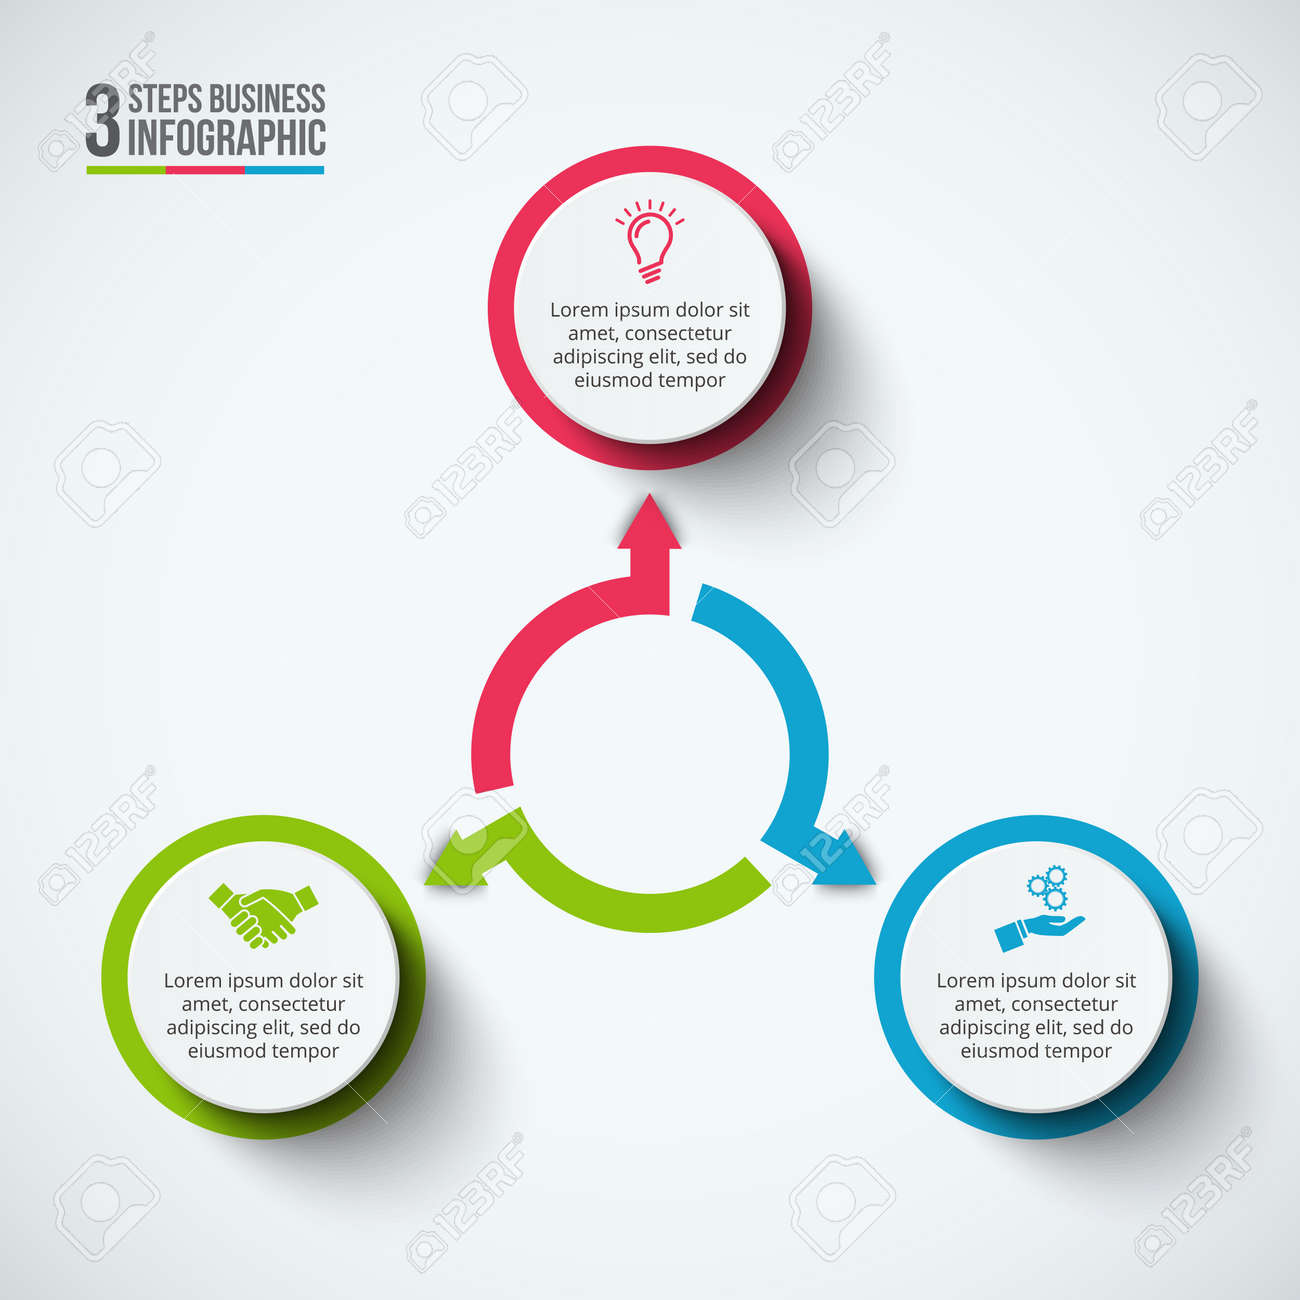 infographic design template business concept with 3 options